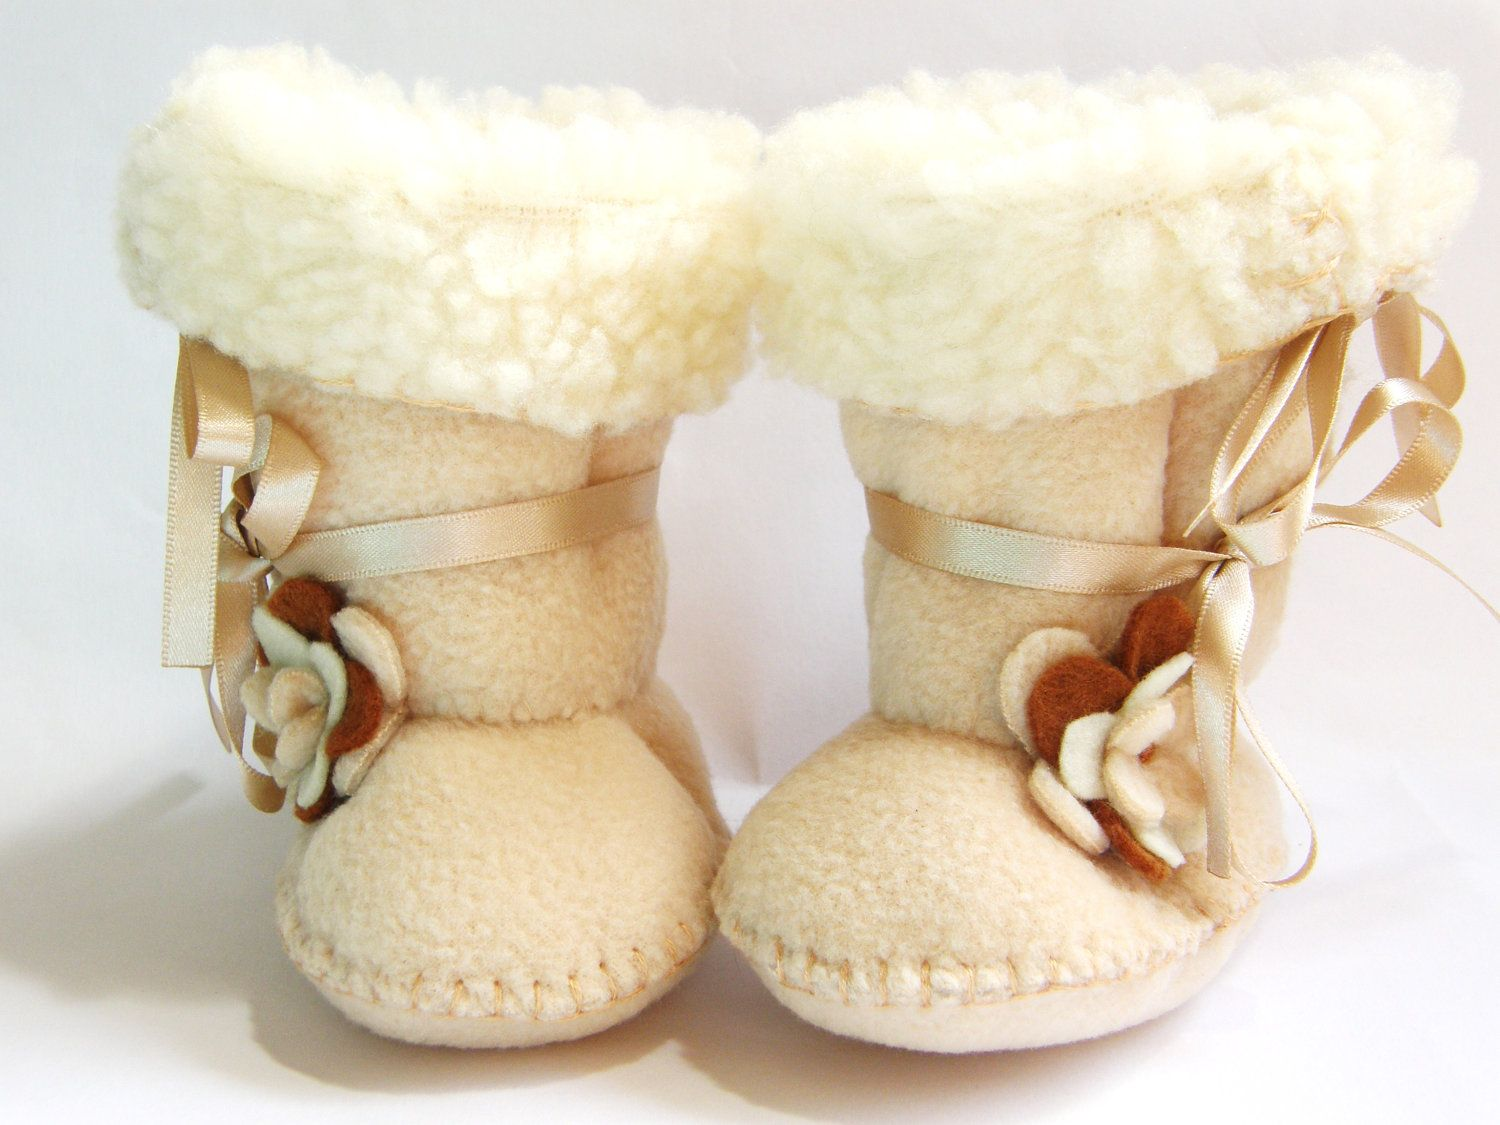 c5f03061863 Cafe+Latte+Baby+Boots+Ugg+Style+Fleece+Baby+Booties+by+funkyshapes ...